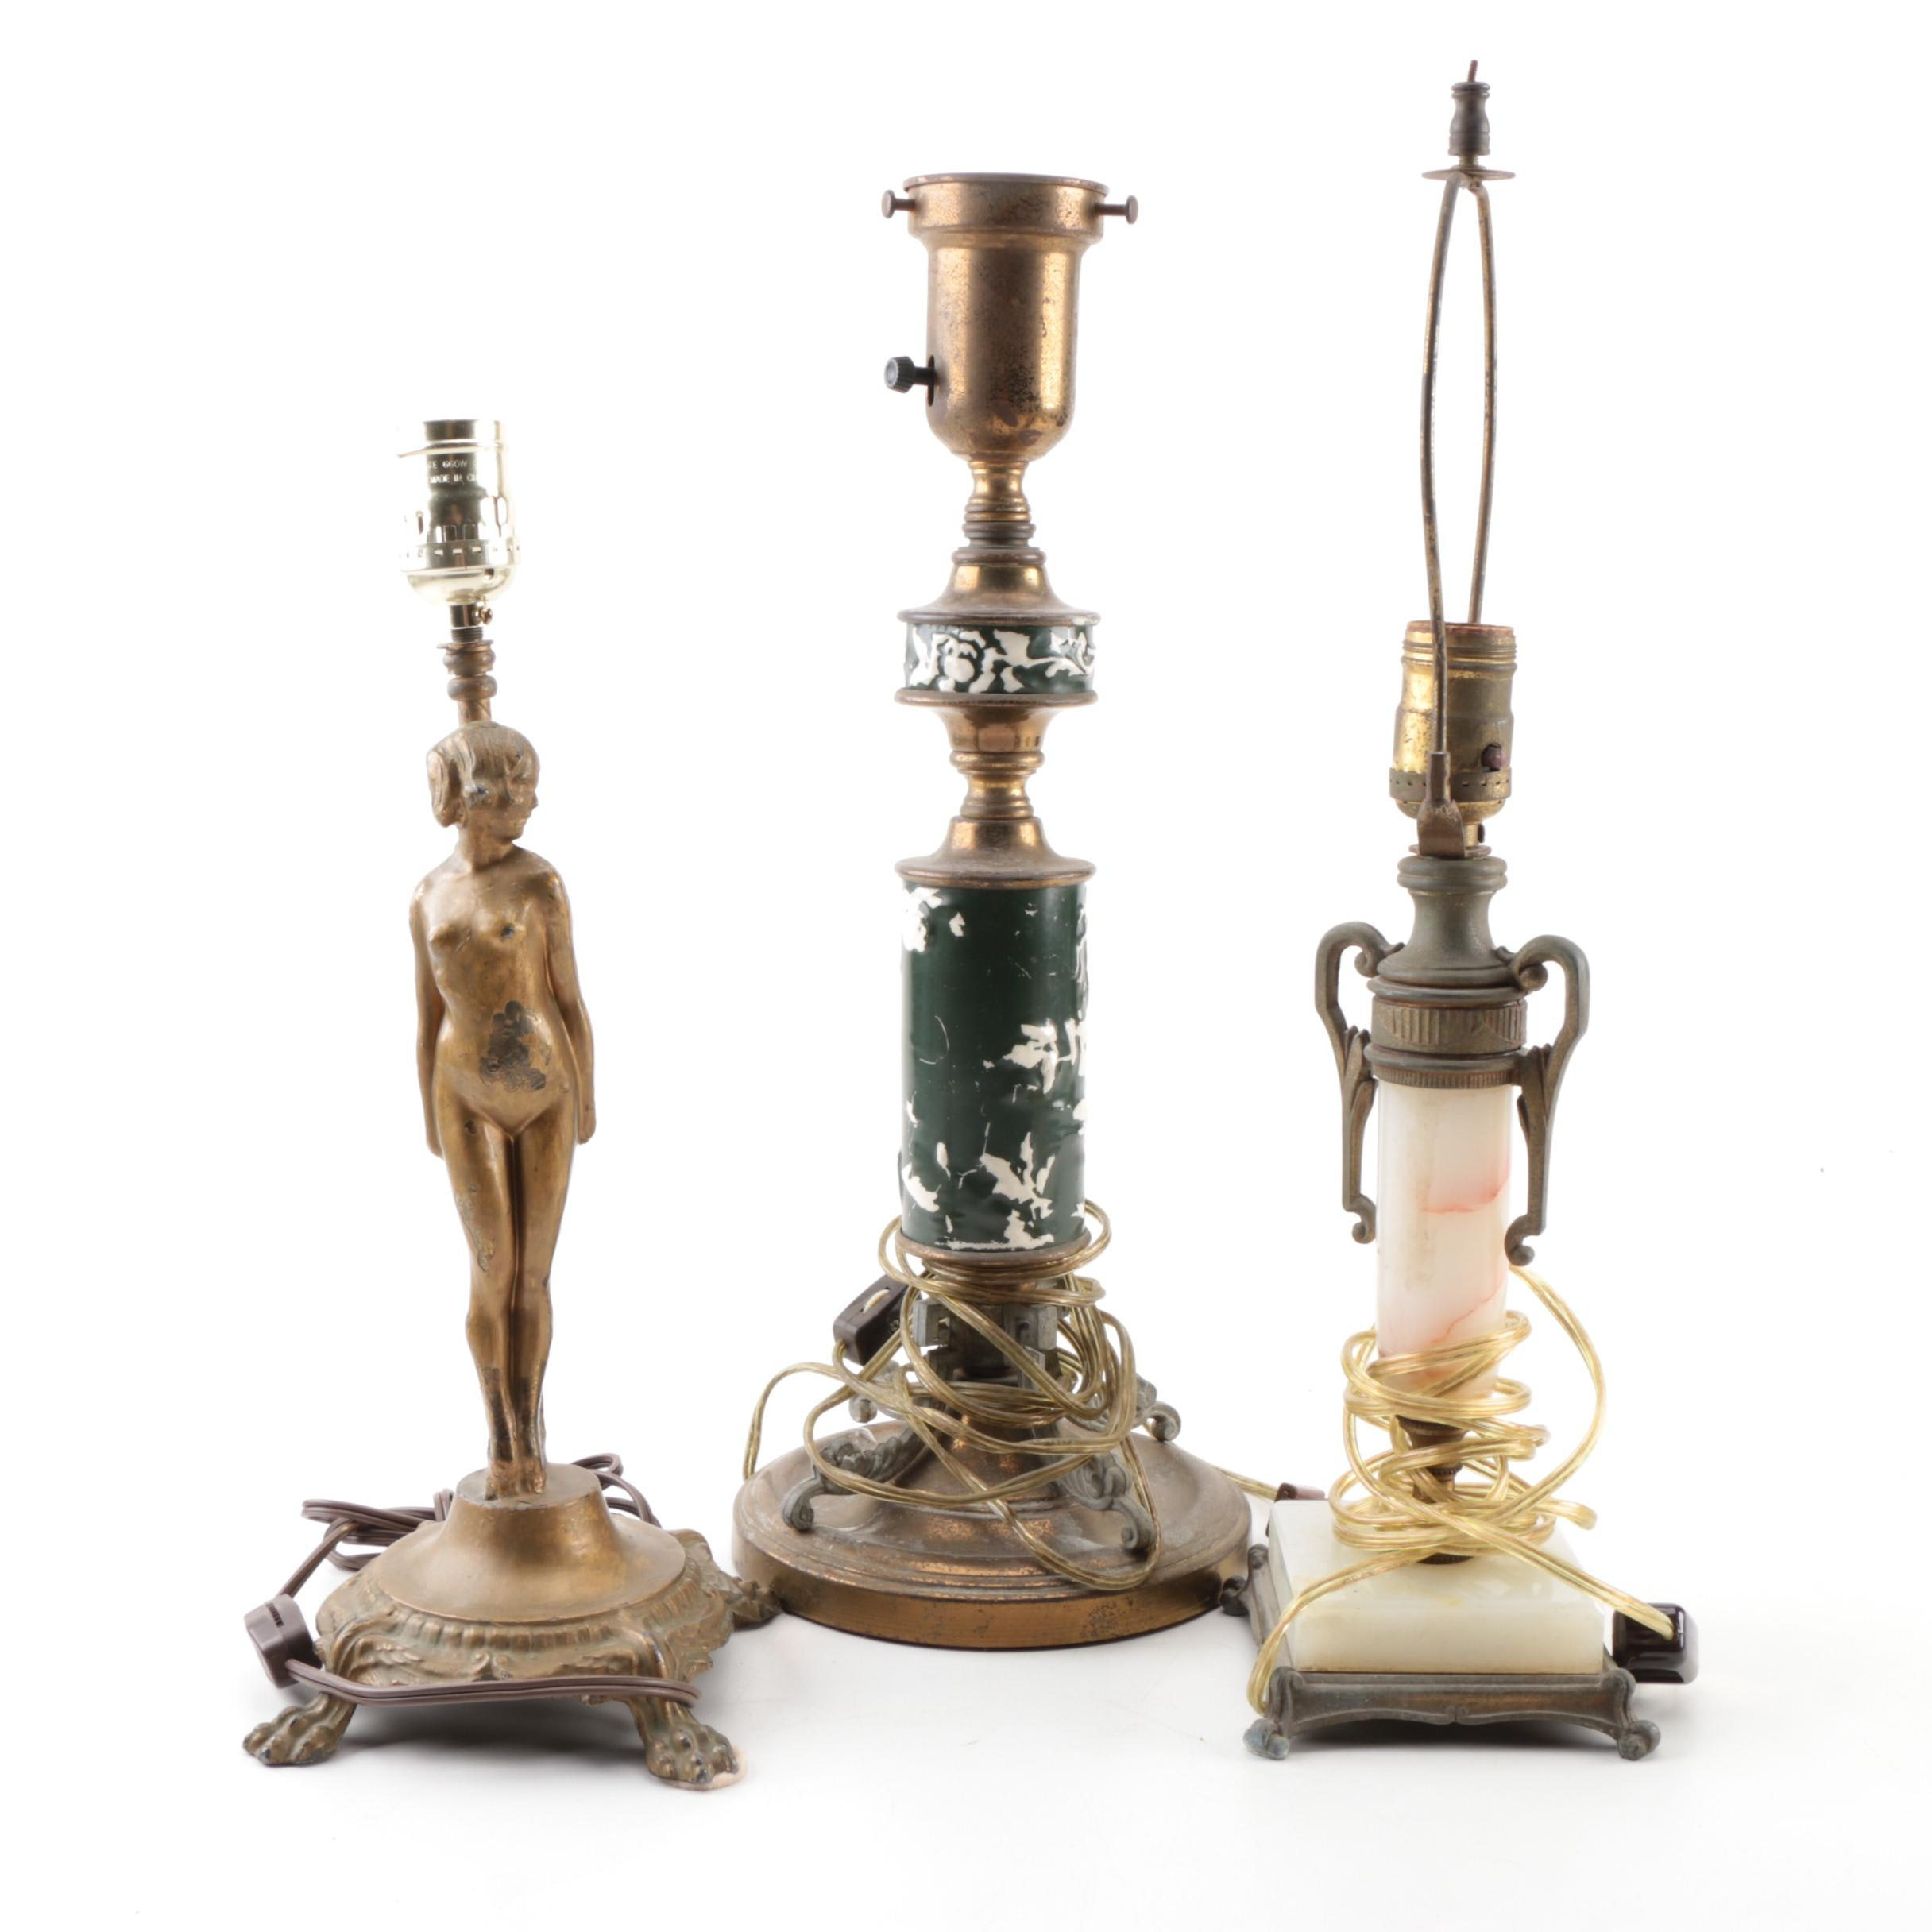 Collection of Vintage Table Lamps